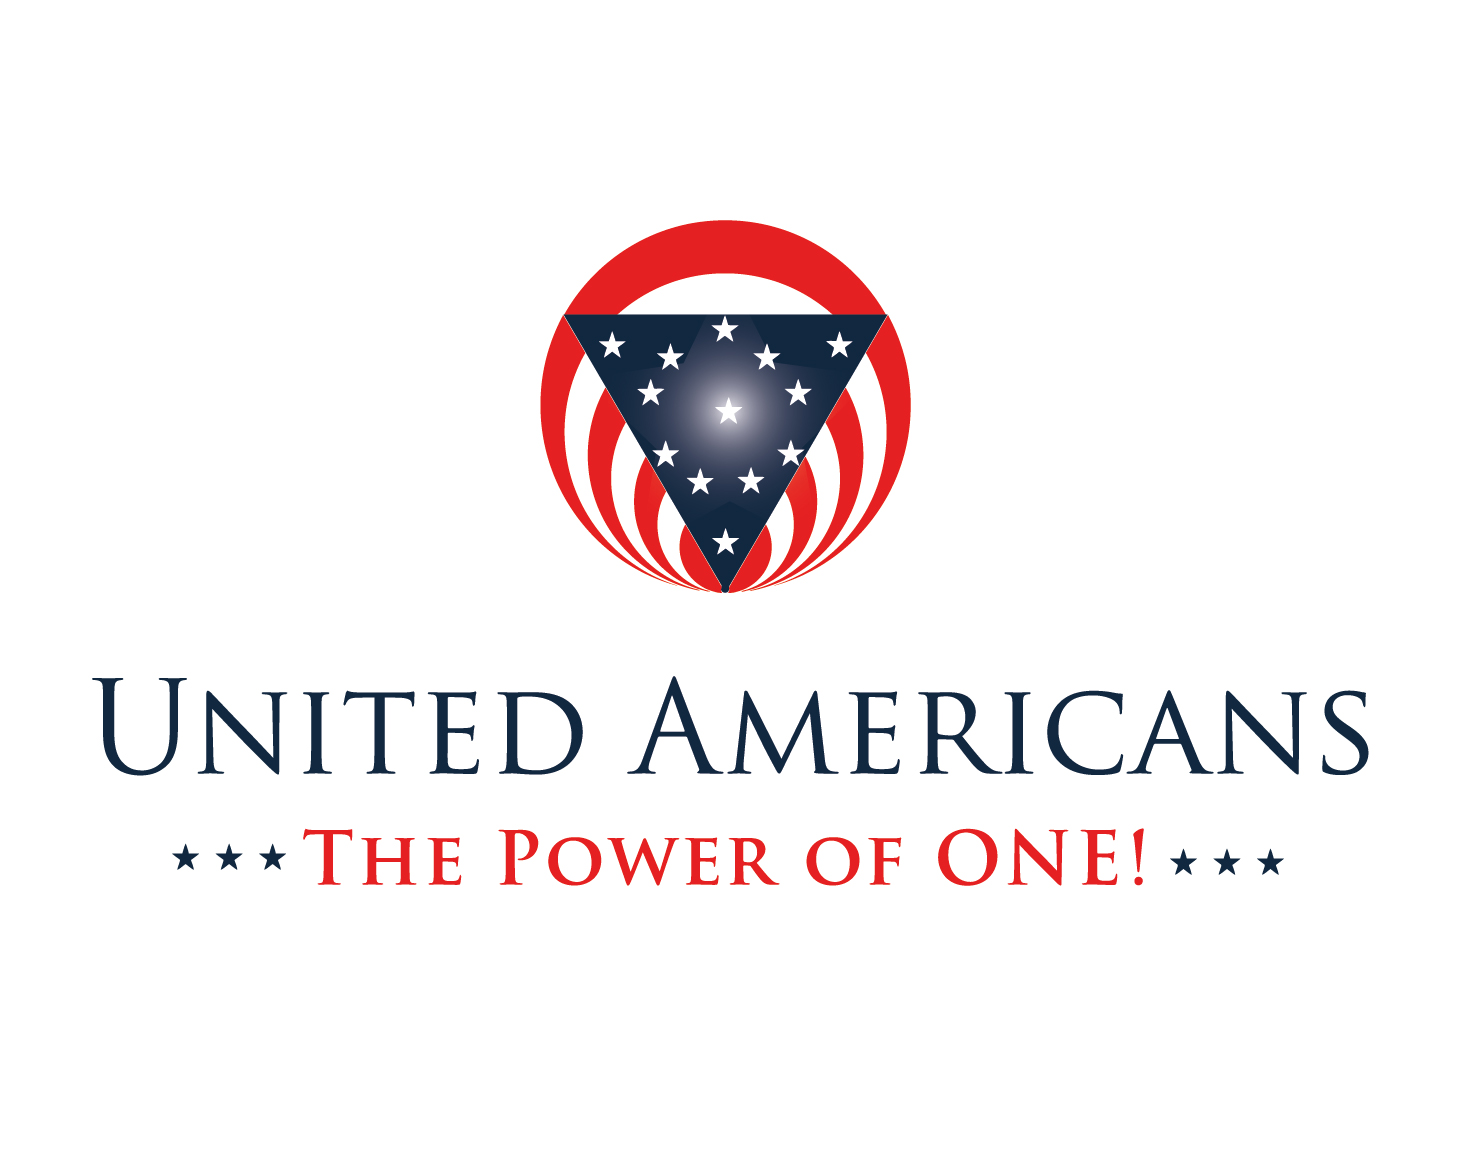 Logo Design by VENTSISLAV KOVACHEV - Entry No. 23 in the Logo Design Contest Creative Logo Design for United Americans.